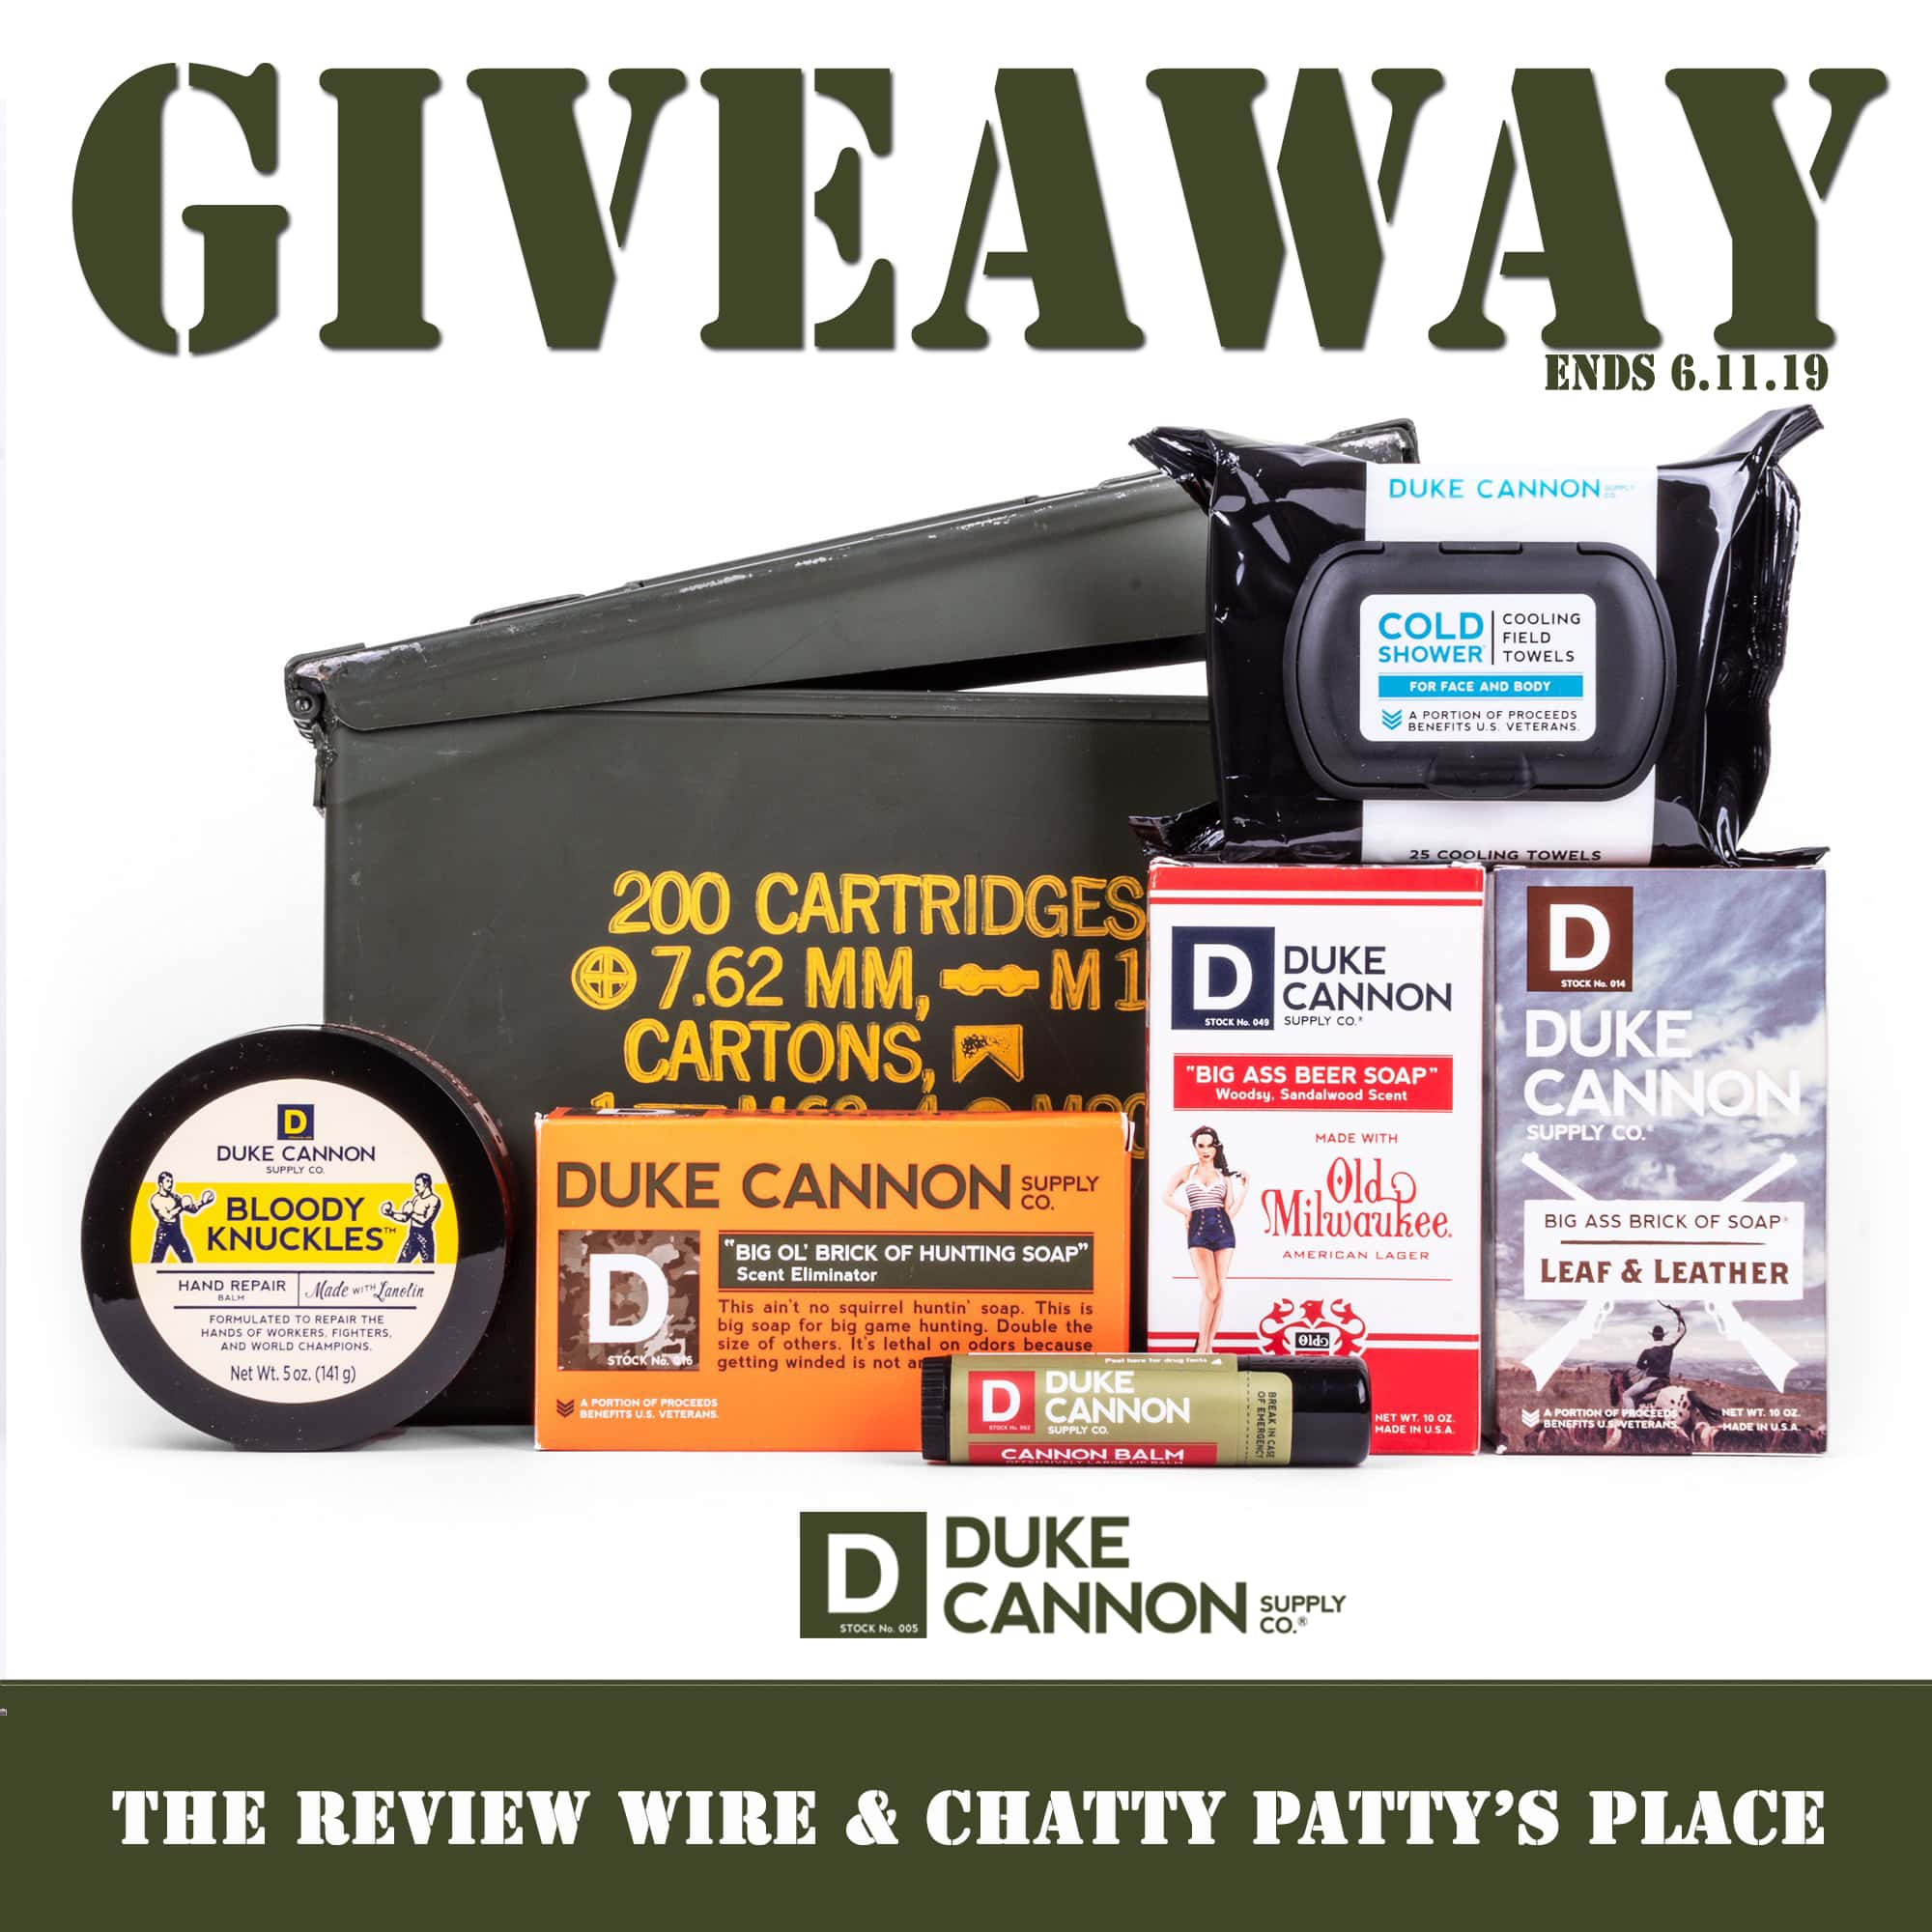 The Review Wire: Duke Cannon Tackle Box Giveaway. Ends 6.11.19